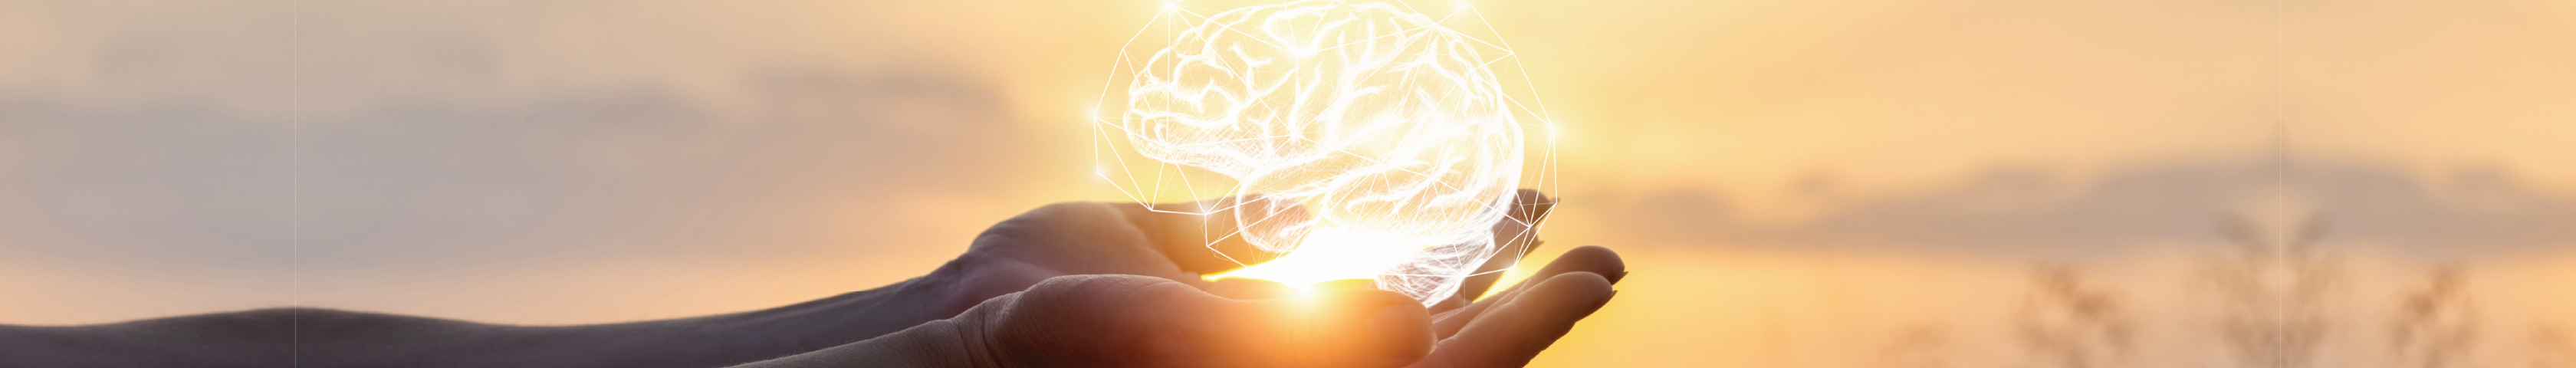 Hands extended holding a digitally embedded picture of a white human brain